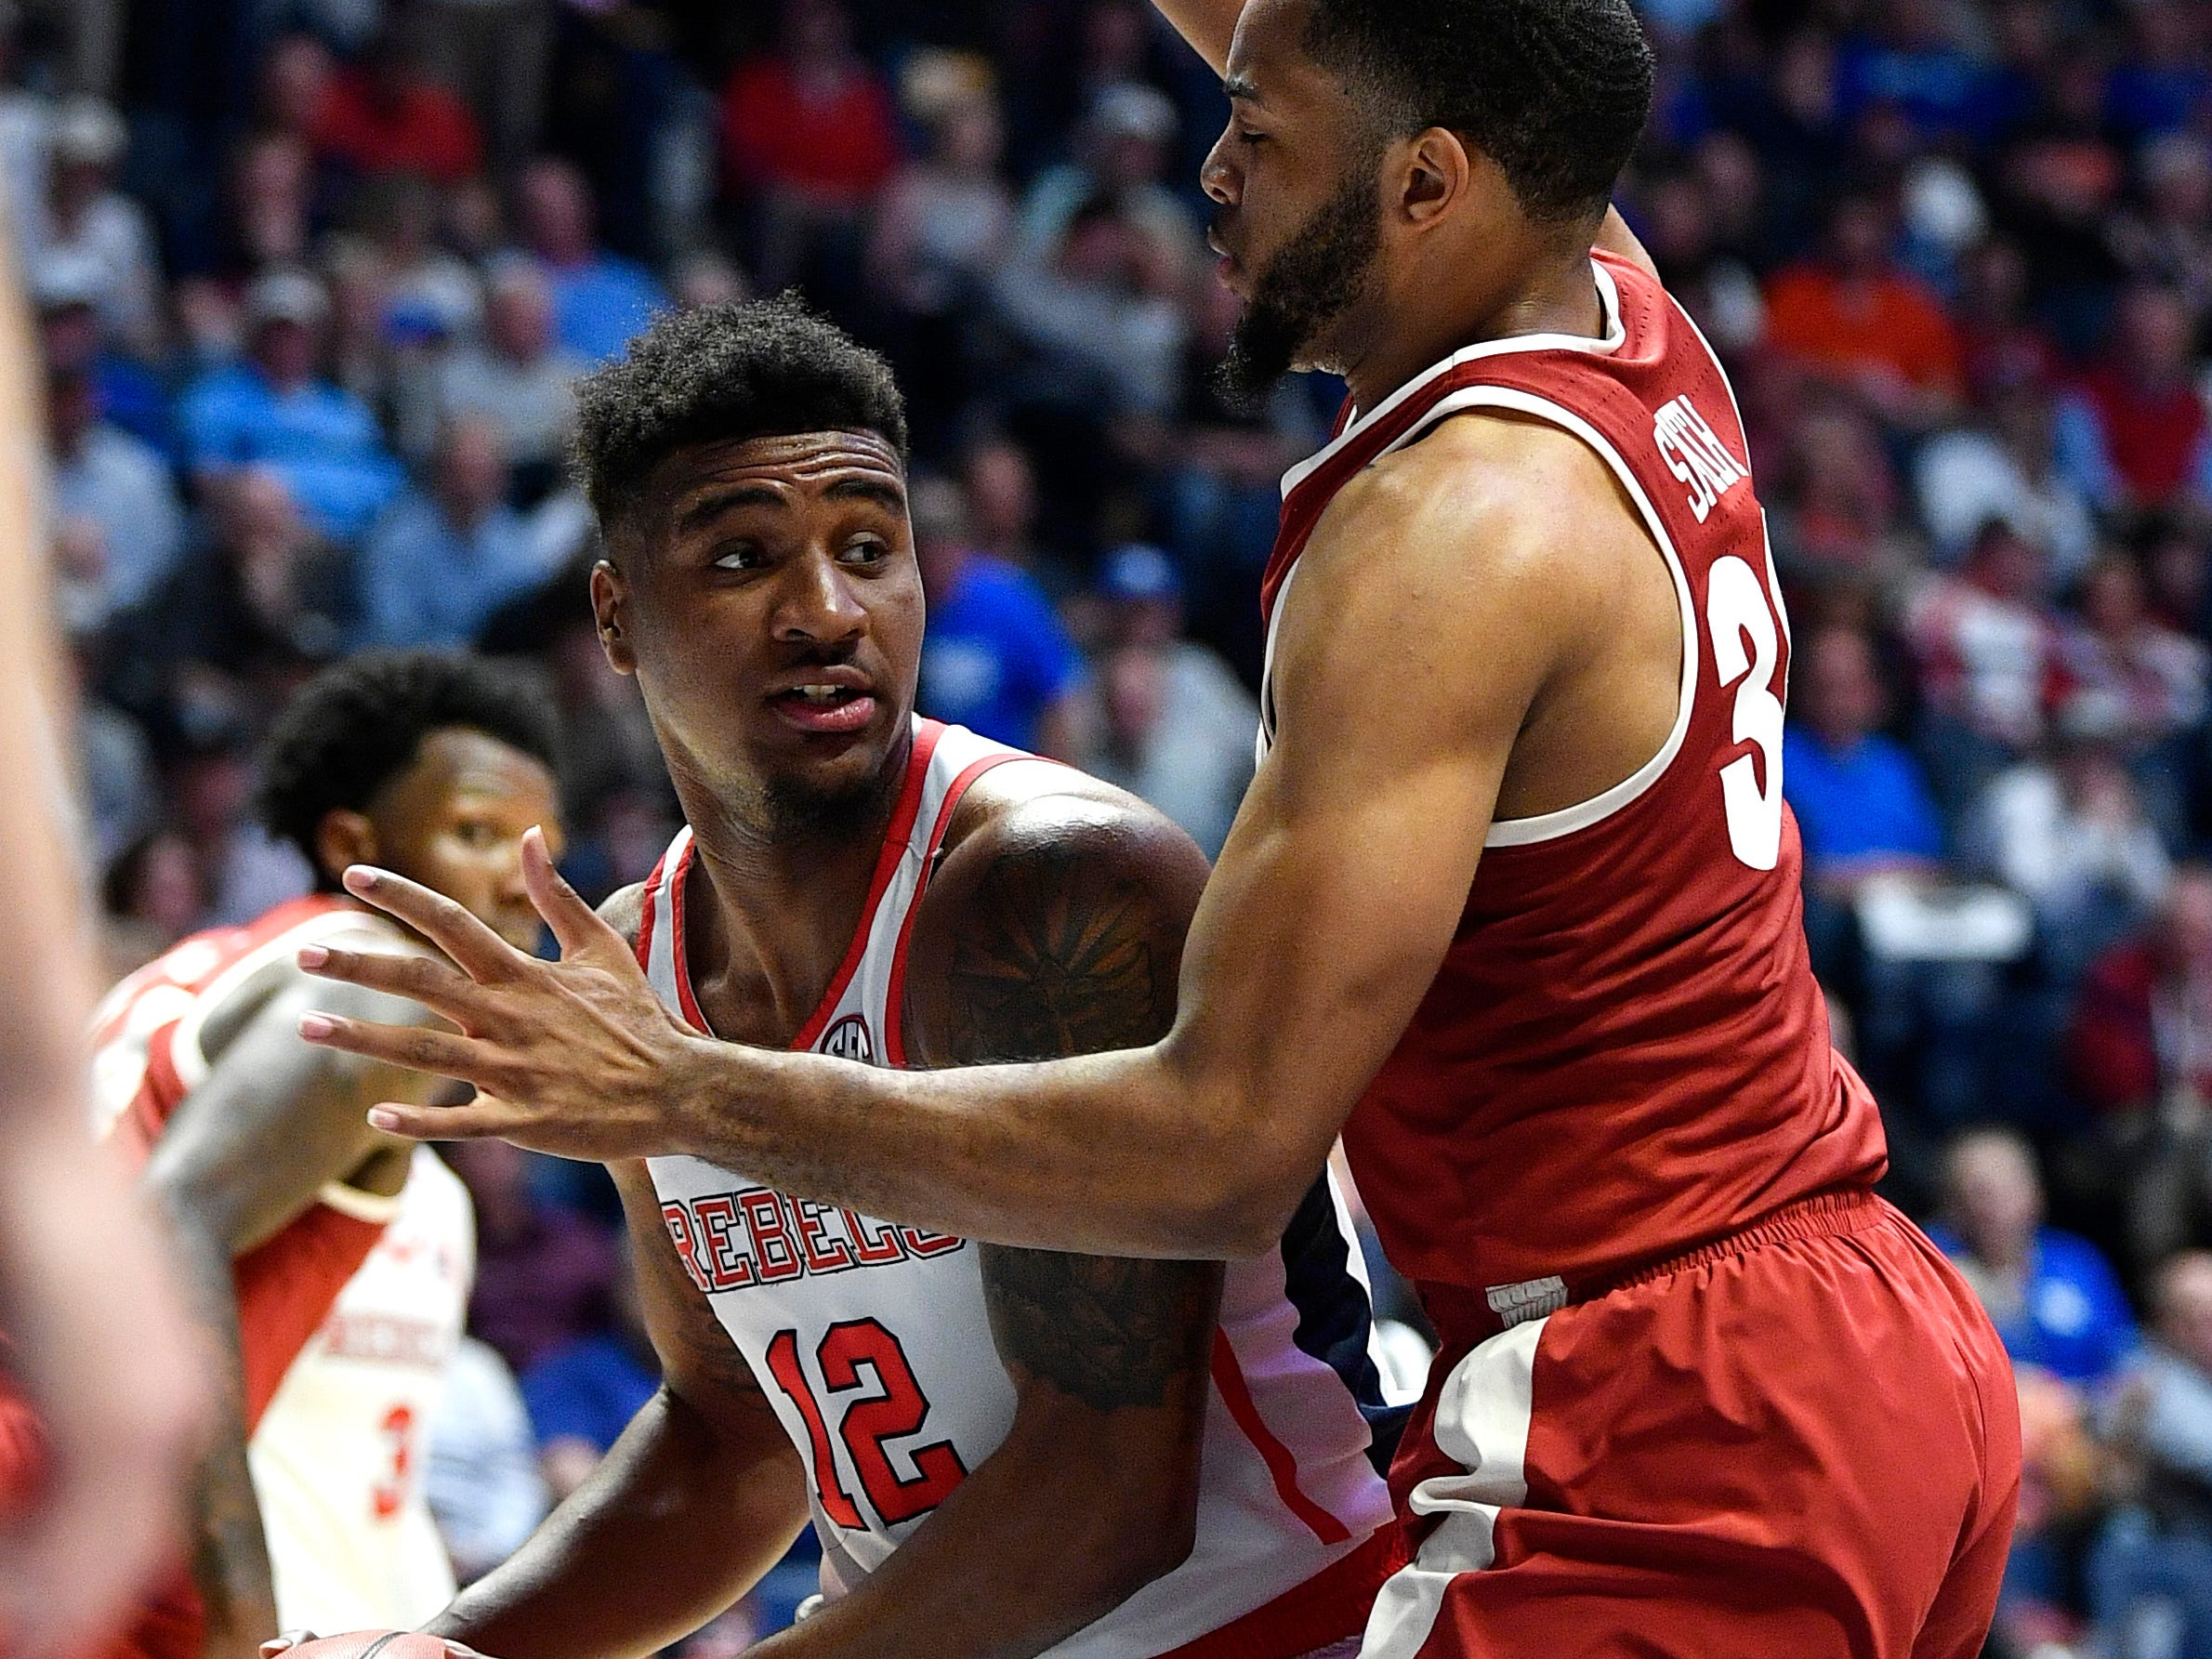 Ole Miss forward Bruce Stevens (12) looks to pass around Alabama forward Galin Smith (30) during the second half of the SEC Men's Basketball Tournament game at Bridgestone Arena in Nashville, Tenn., Thursday, March 14, 2019.